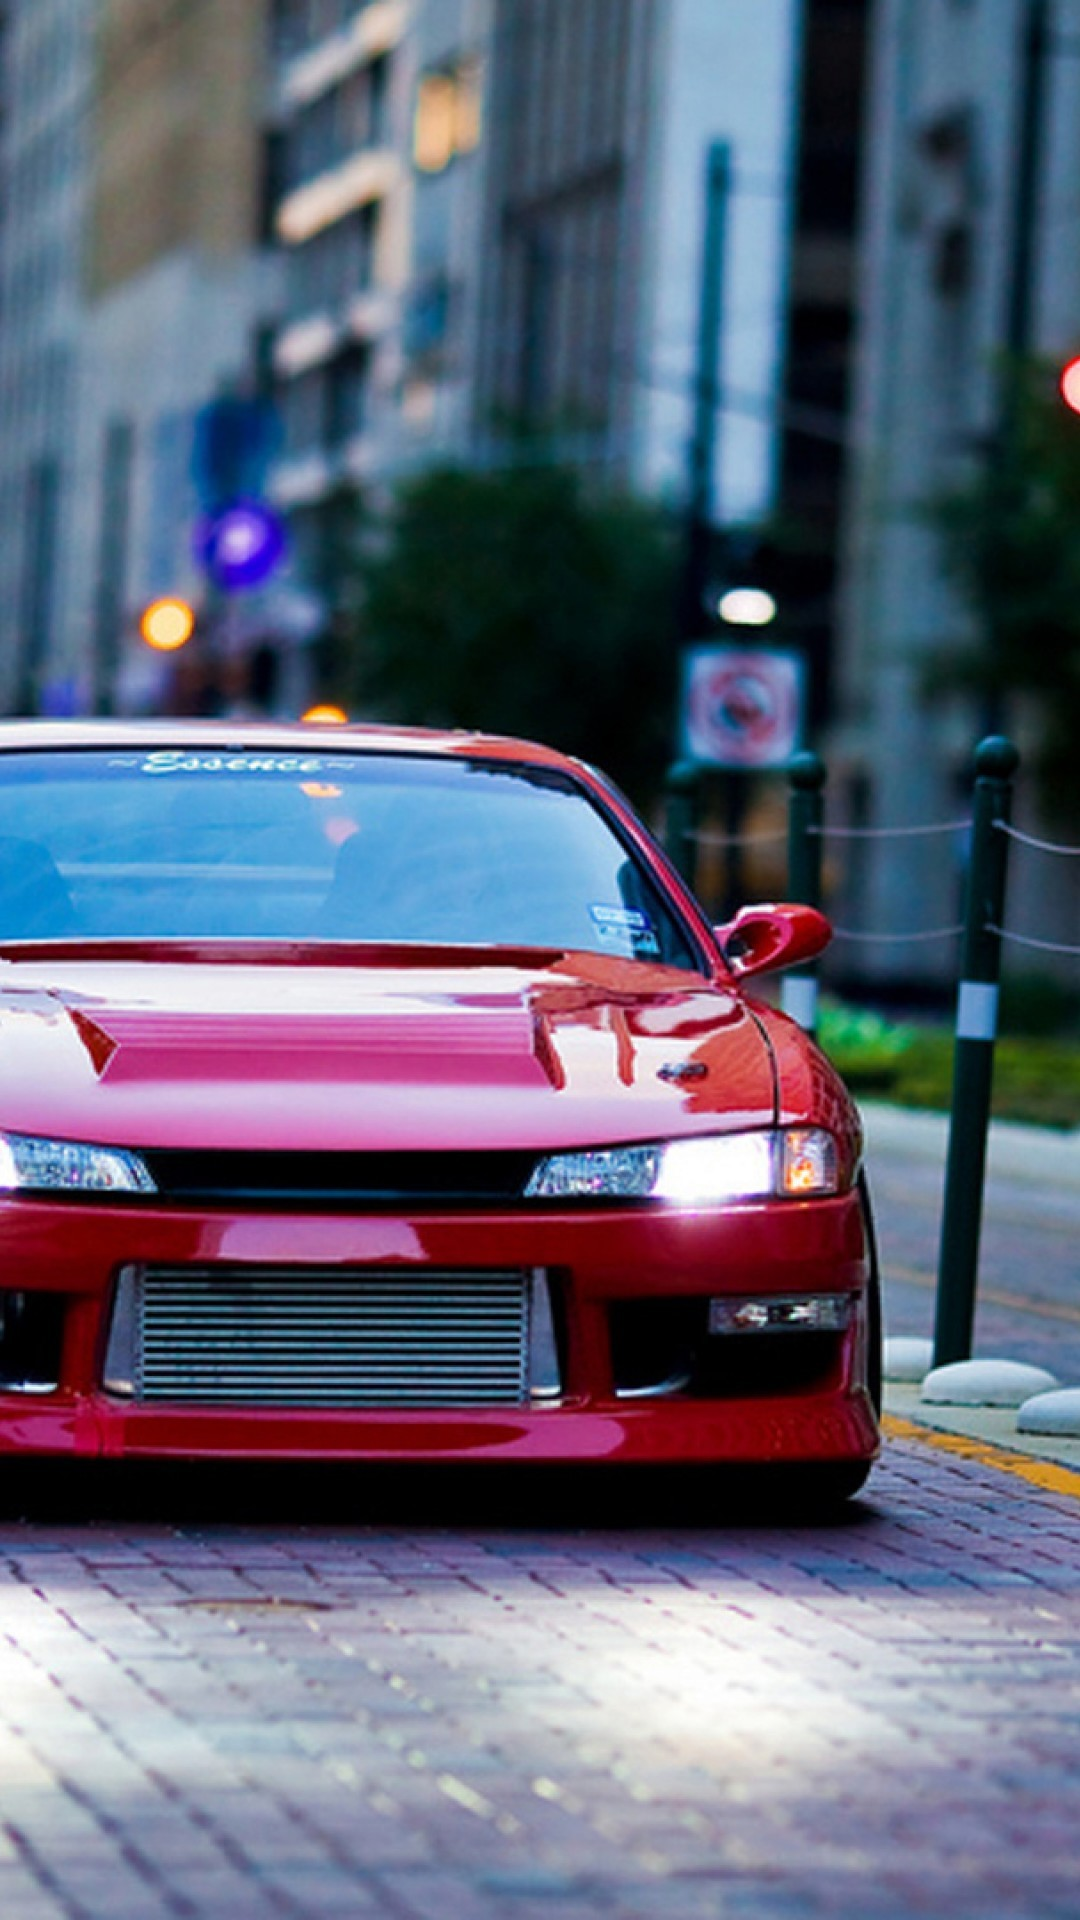 Supreme Wallpaper Iphone 5 Nissan 240sx Wallpaper 61 Images